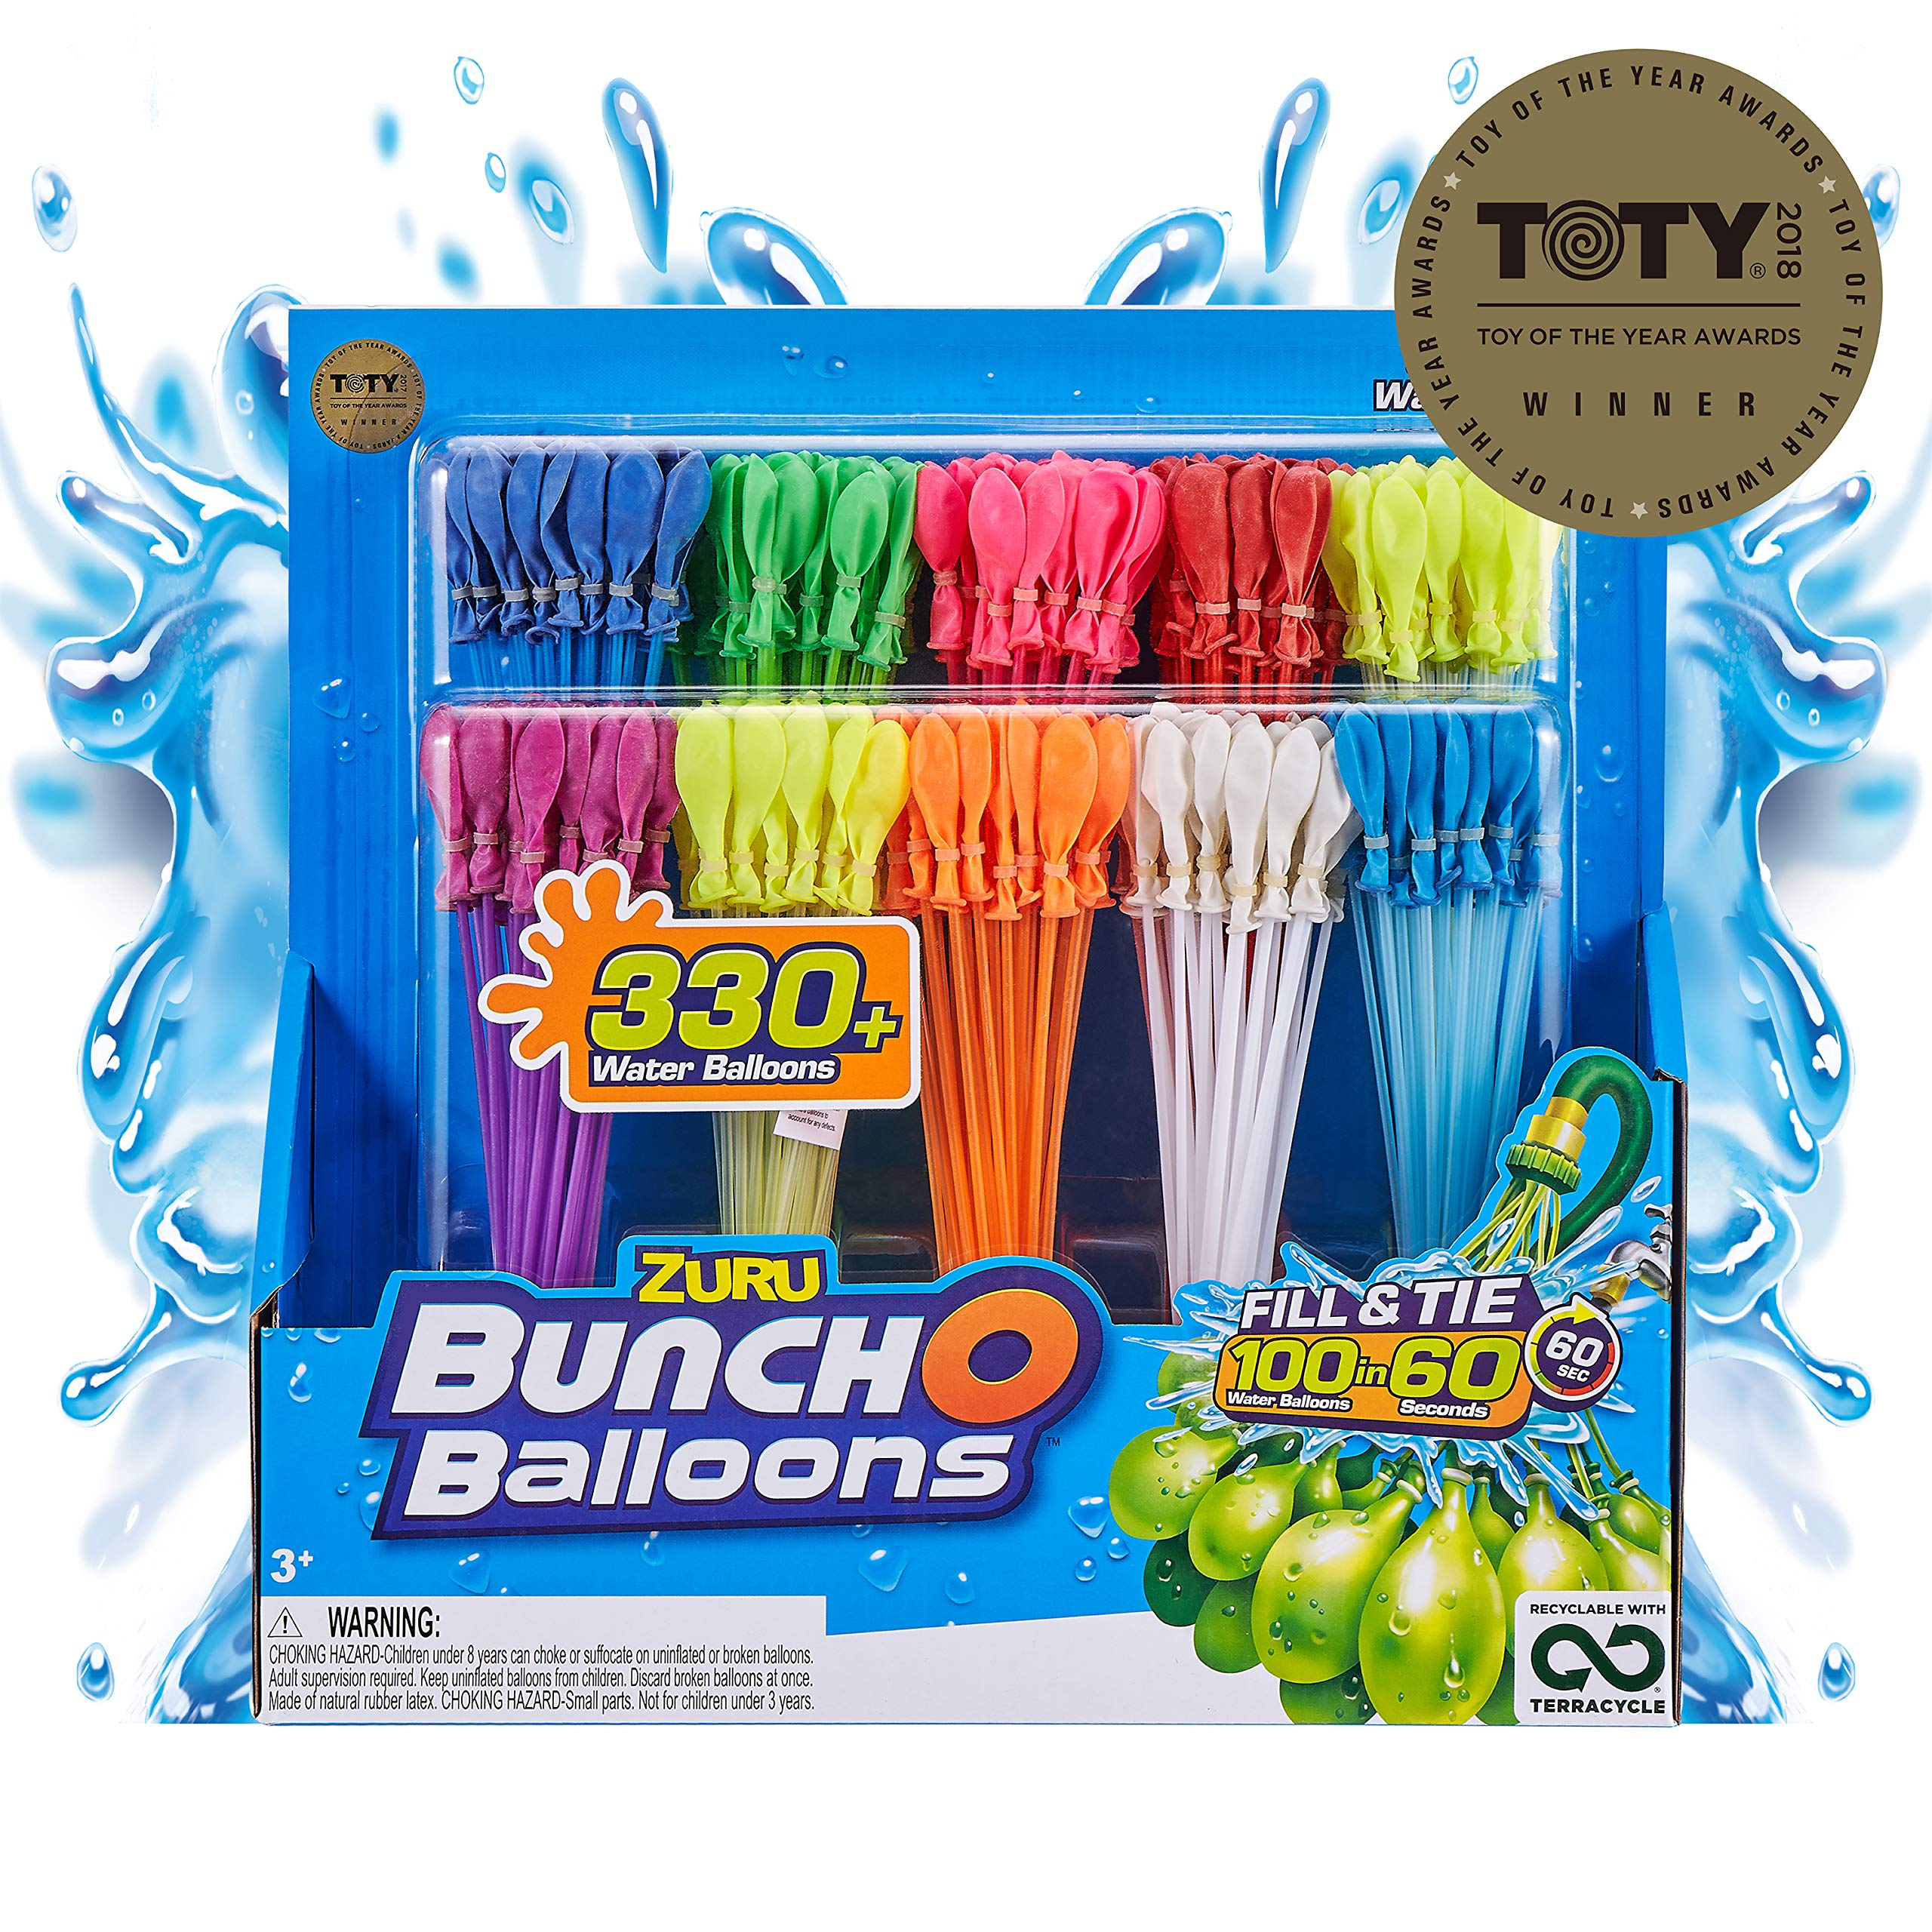 Bunch O Balloons - 350 Rapid-Fill Water Balloons (10 Pack) Amazon Exclusive Multi-Colored